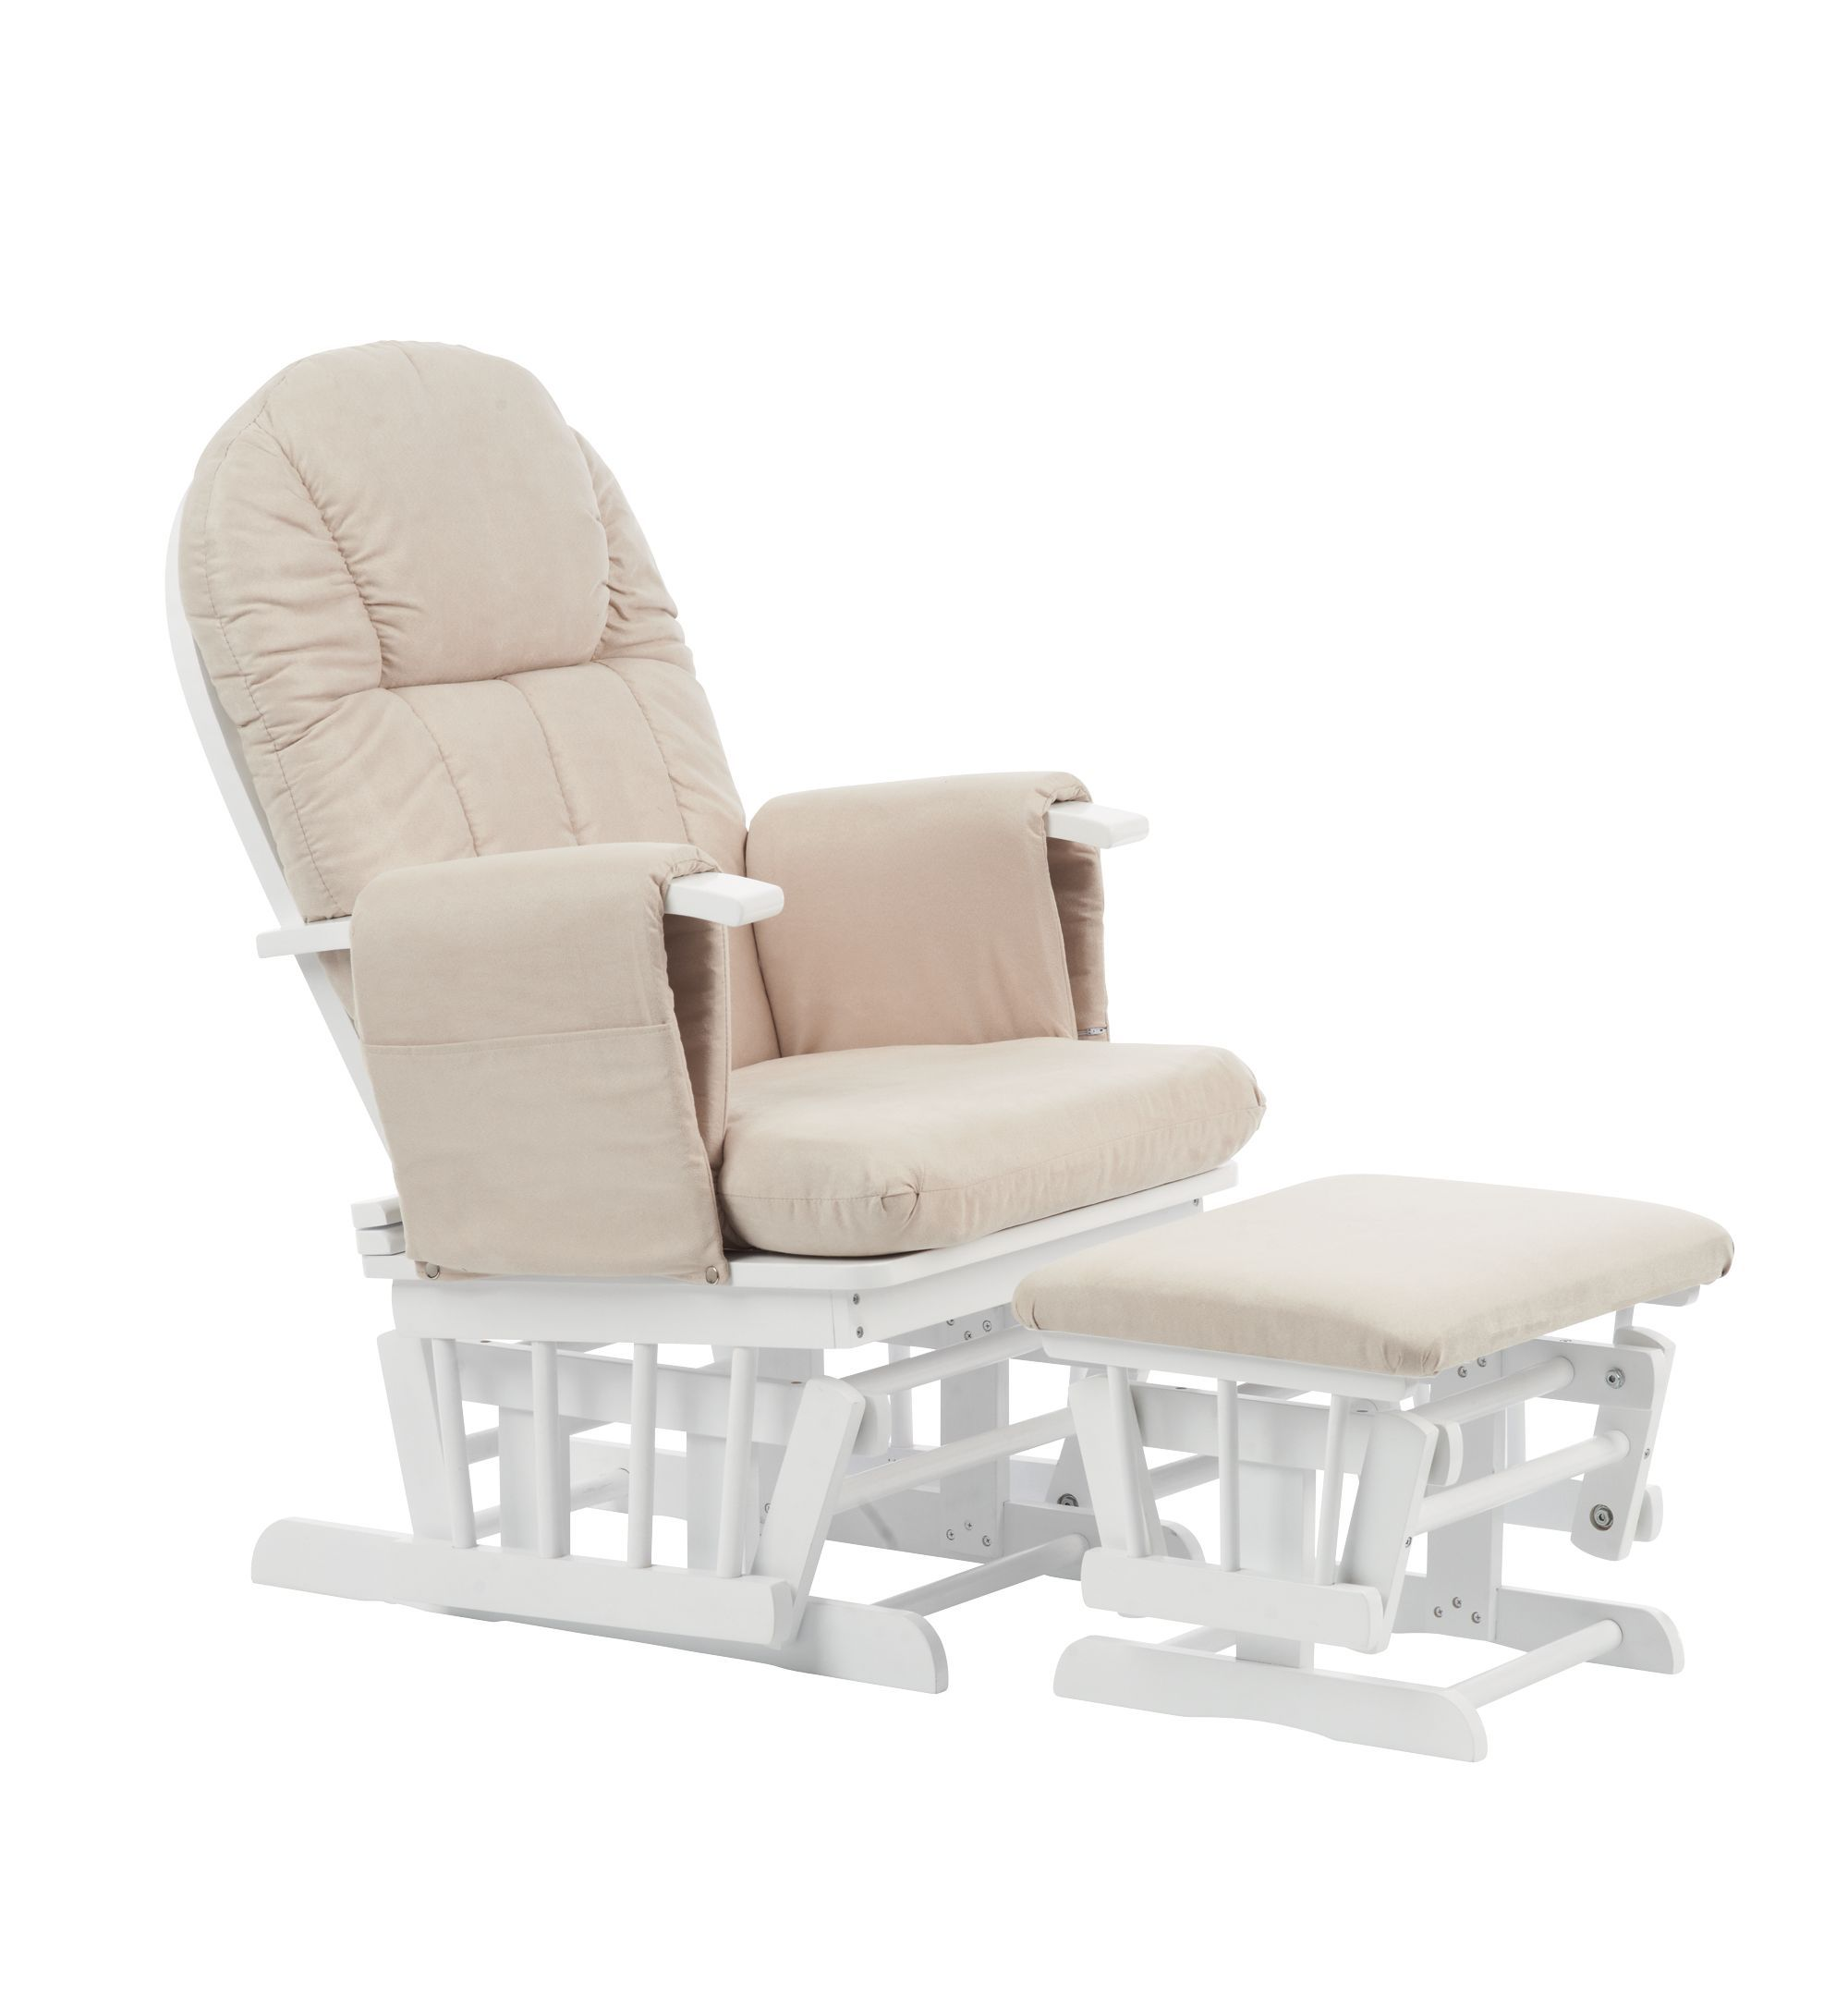 Mothercare Reclining Glider Chair White Baby rocking